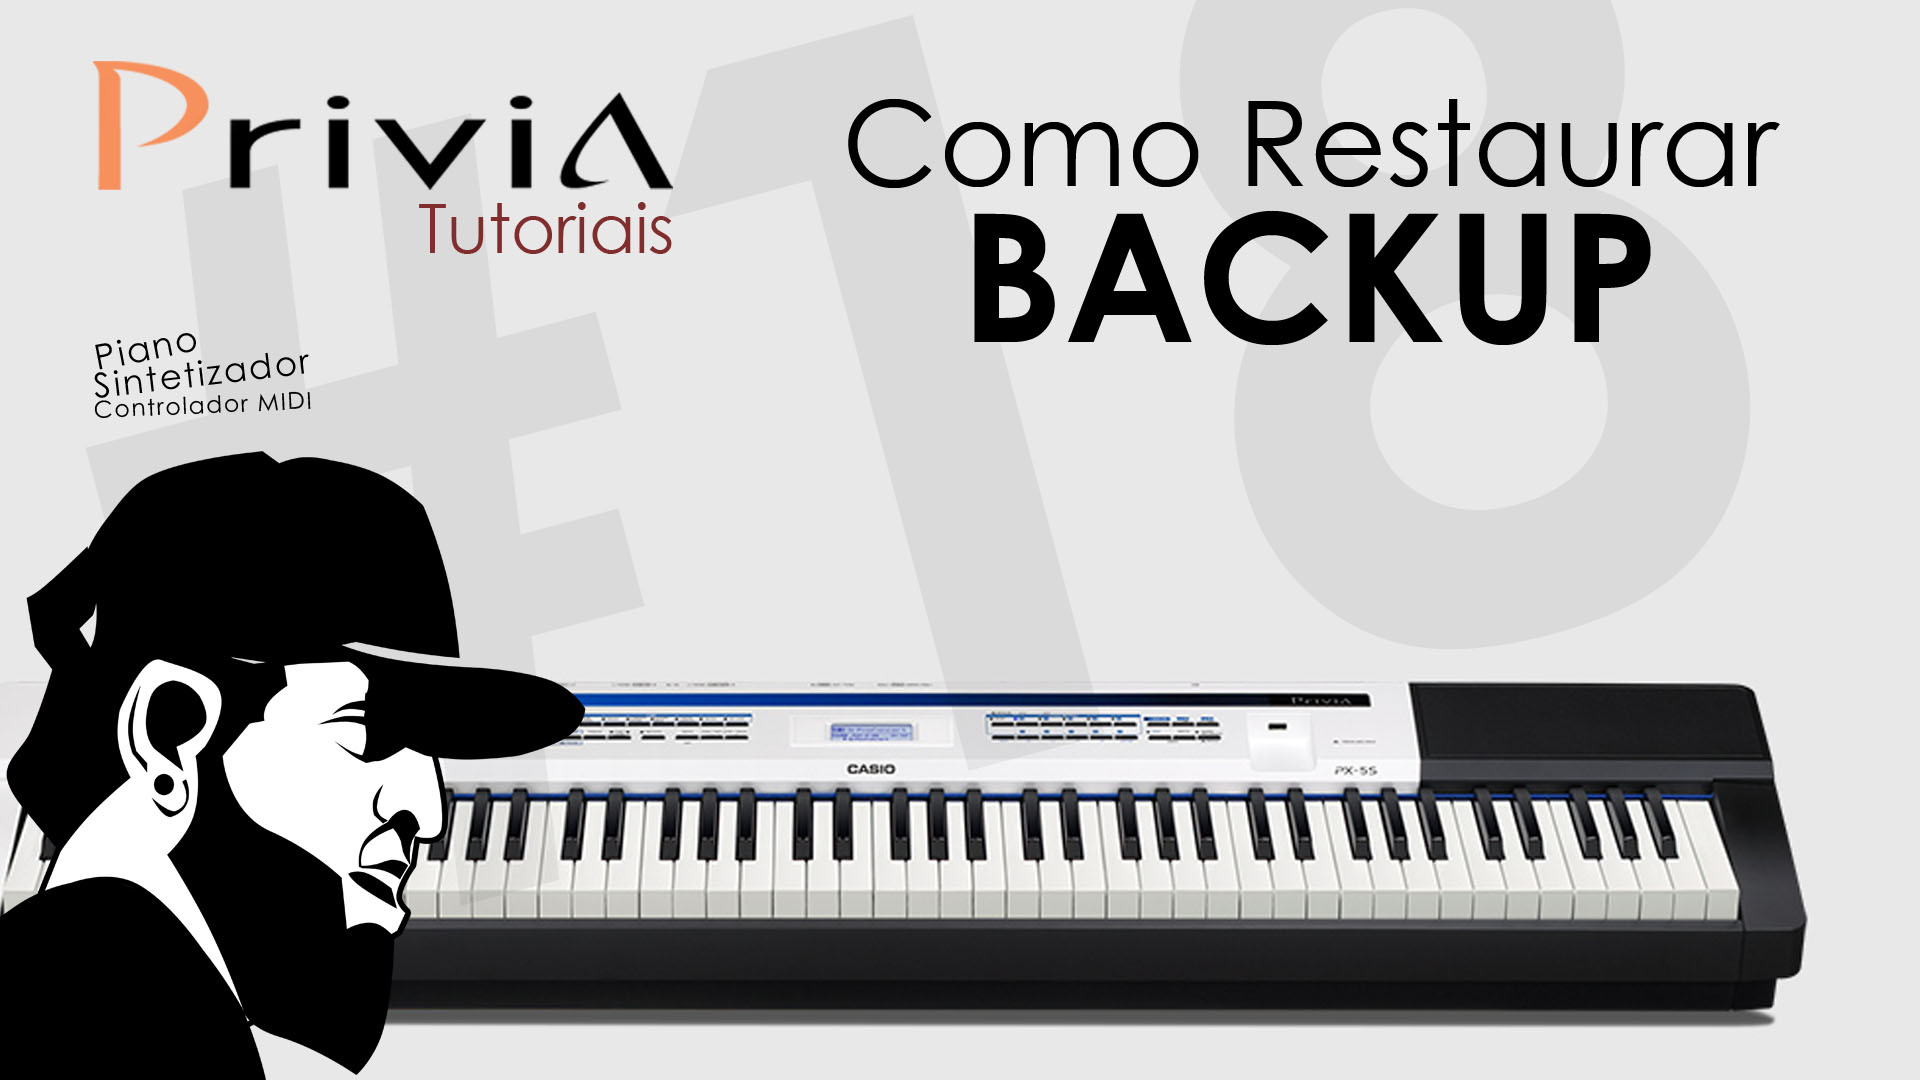 Tutorial Casio Privia PX 5S #18 – Como Restaurar Backup do Casio Privia PX-5s